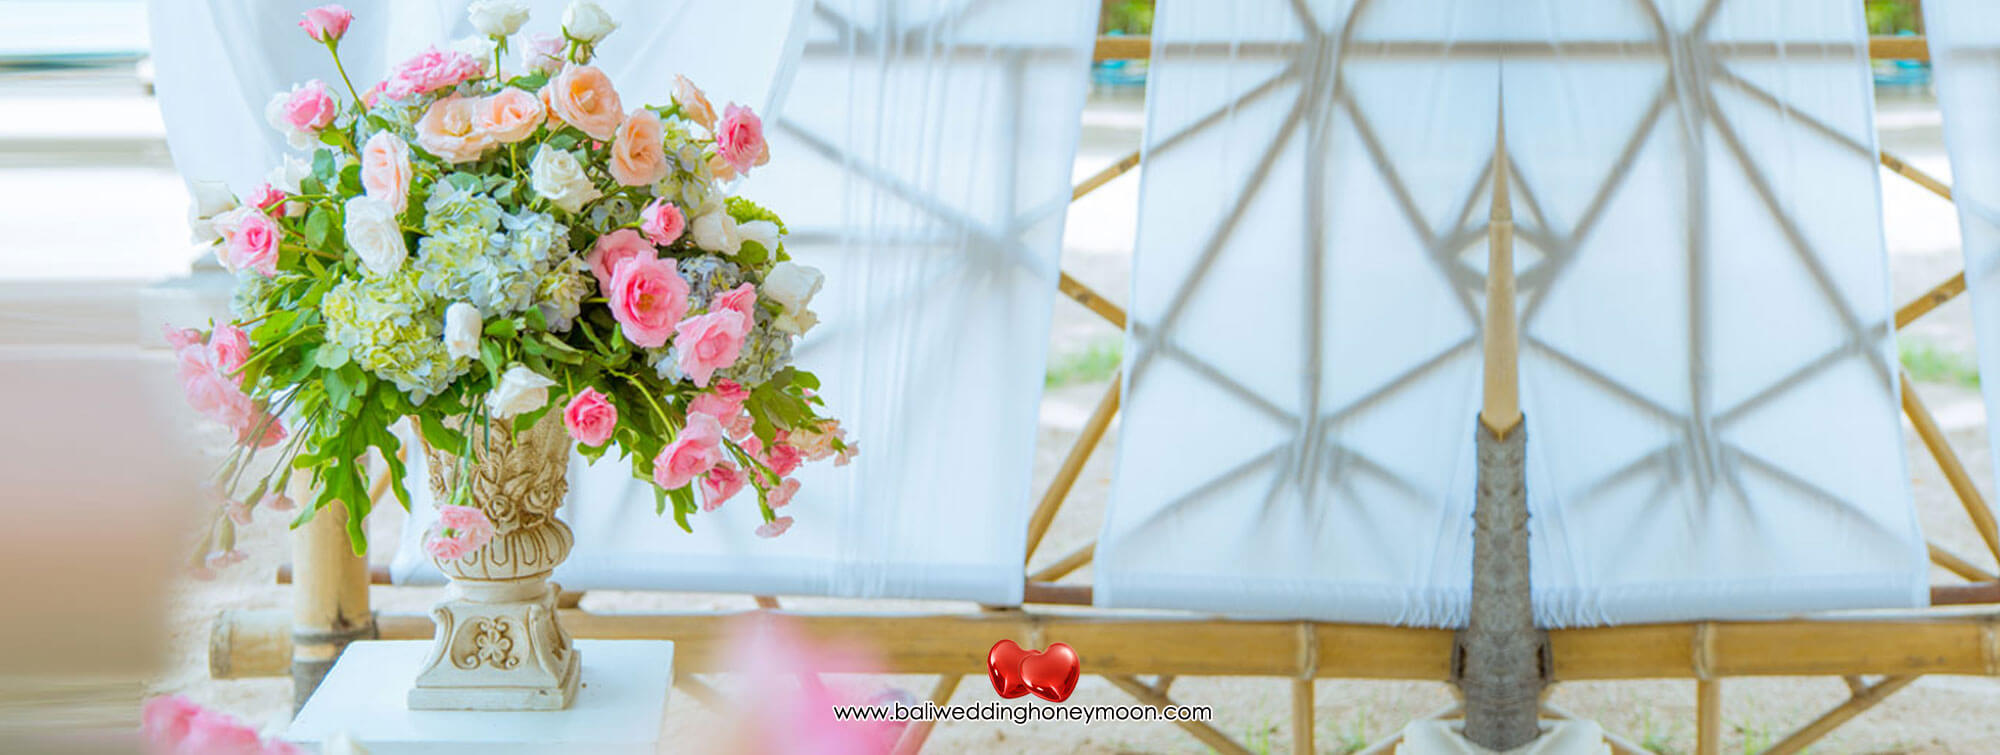 baliweddingdecoration-baliweddinghoneymoon-baliweddingorganizer-baliweddingplanner6